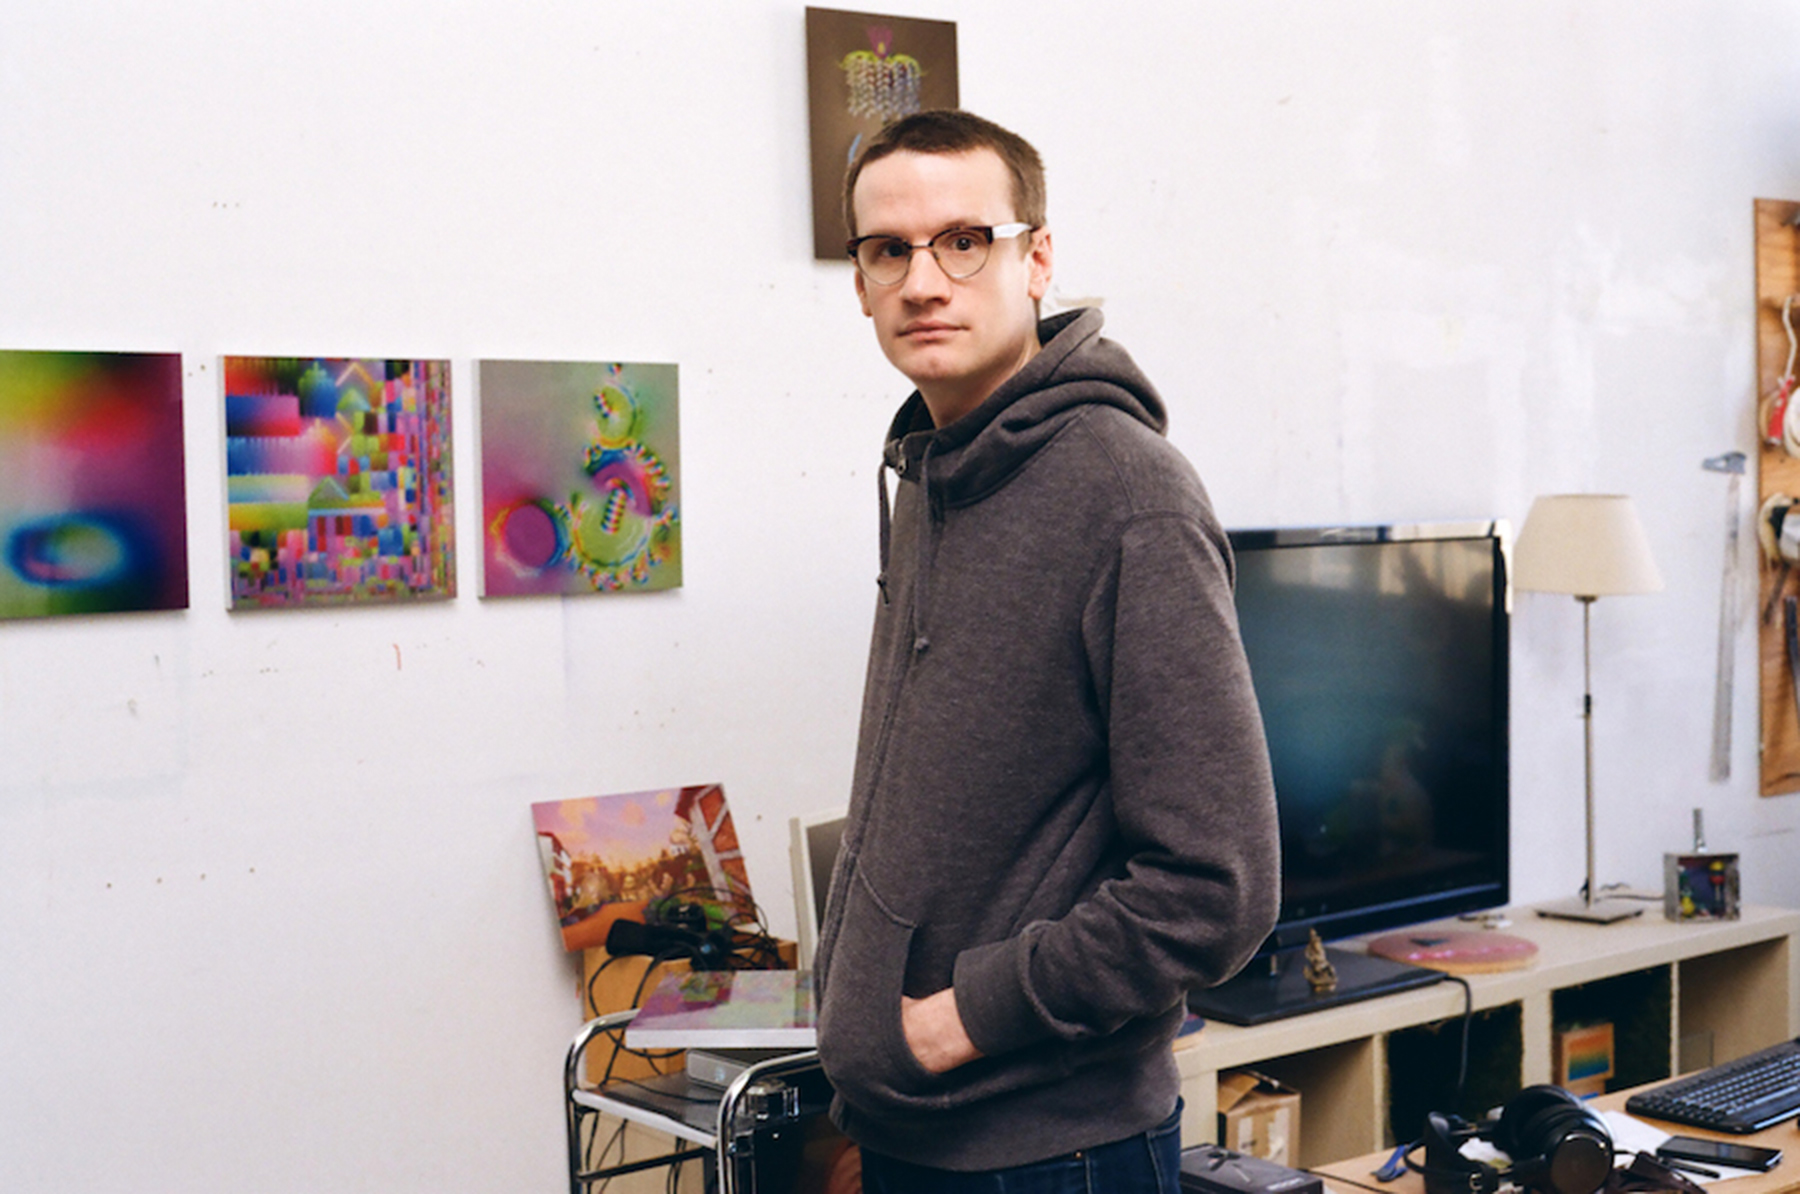 Jeremy Couillard in his studio,  courtesy of the artist, Daata Editions and Phillips Auctions